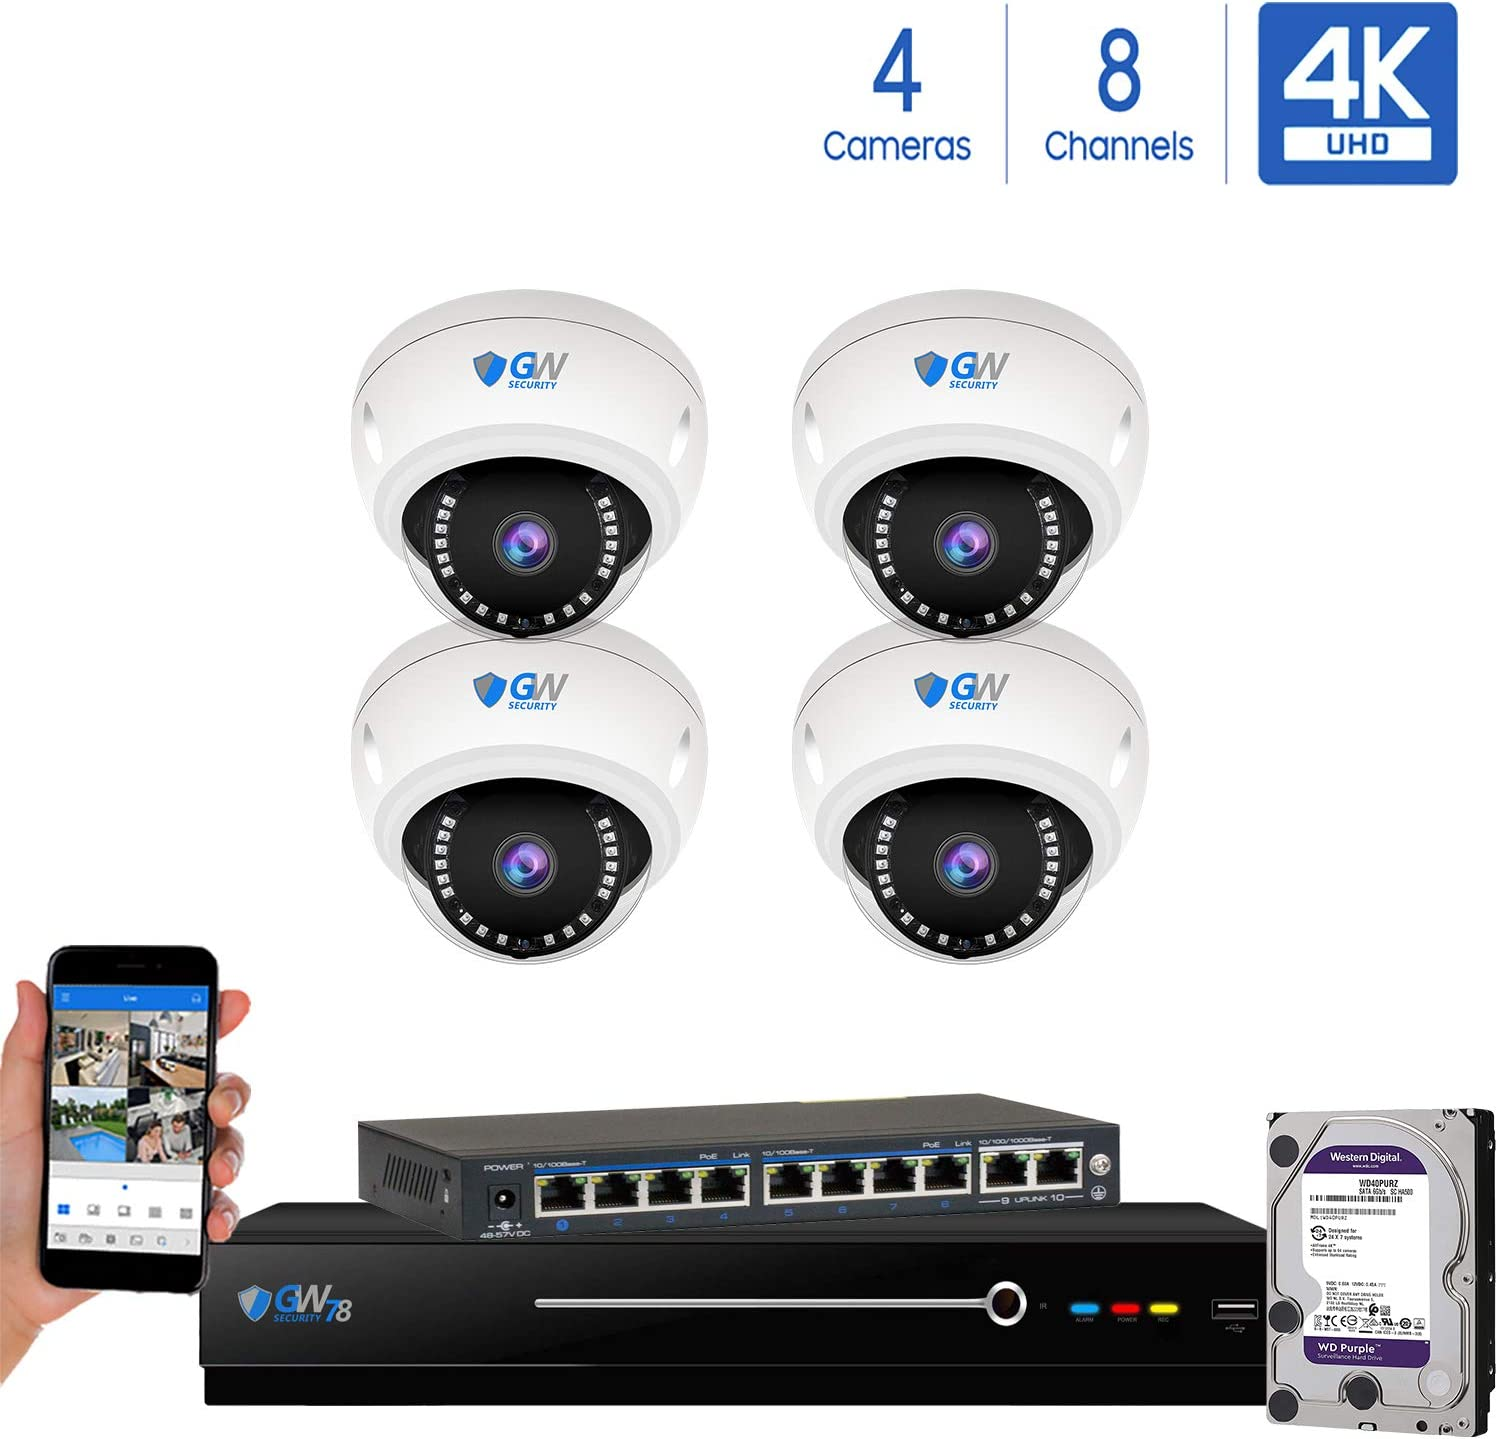 8 Channel 4K NVR 8 Megapixel H.265 4K Security Camera System, 4 Built-in Microphone Audio Recording HD 2160P 4K IP PoE Dome Cameras, QR-Code Connection